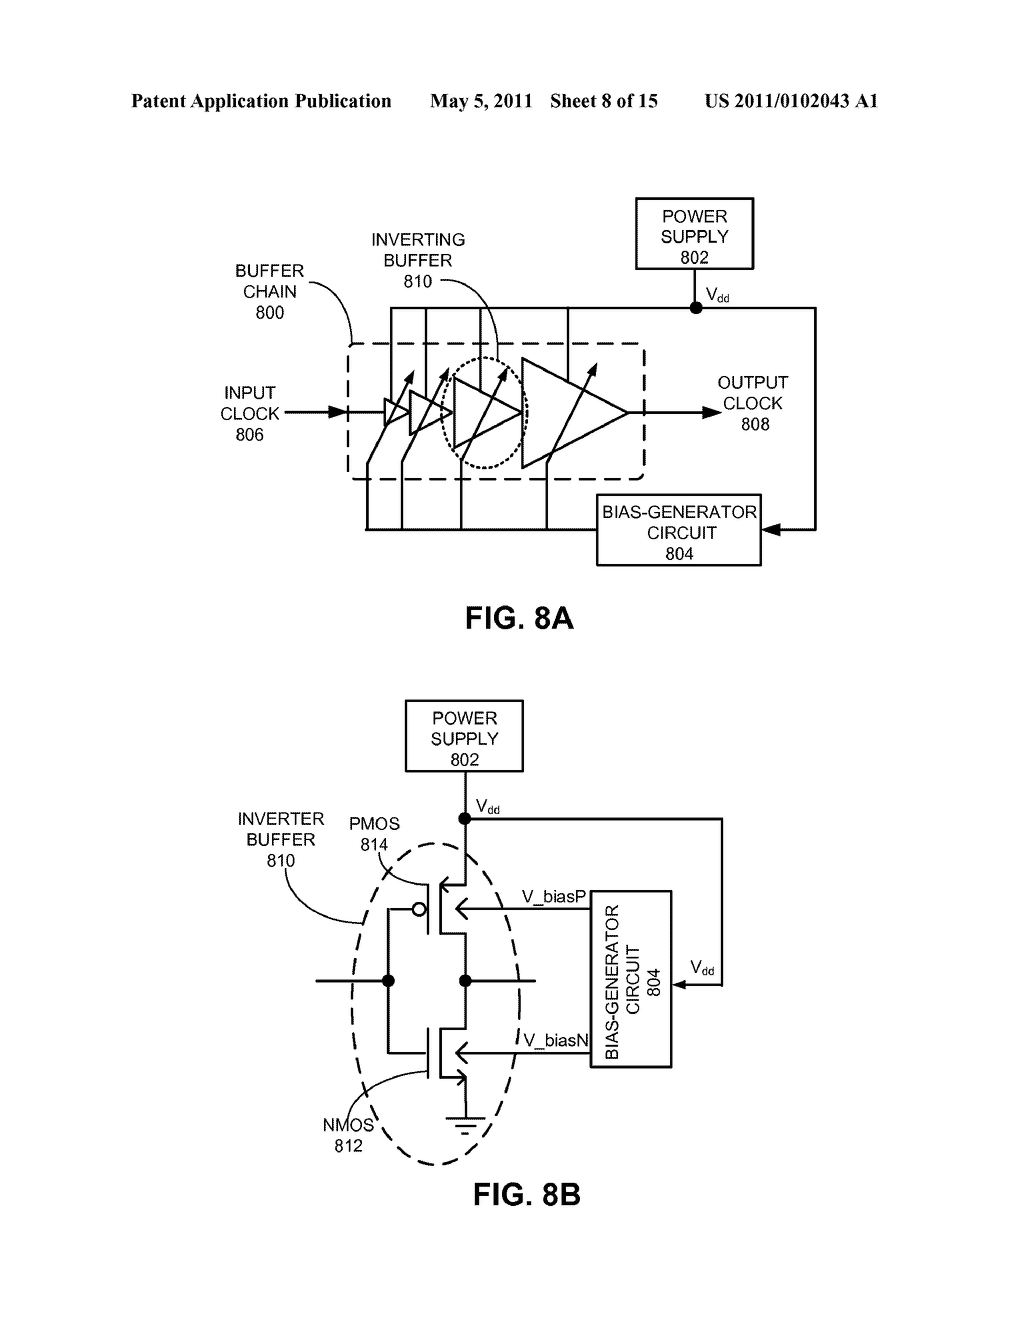 REDUCING POWER-SUPPLY-INDUCED JITTER IN A CLOCK-DISTRIBUTION CIRCUIT